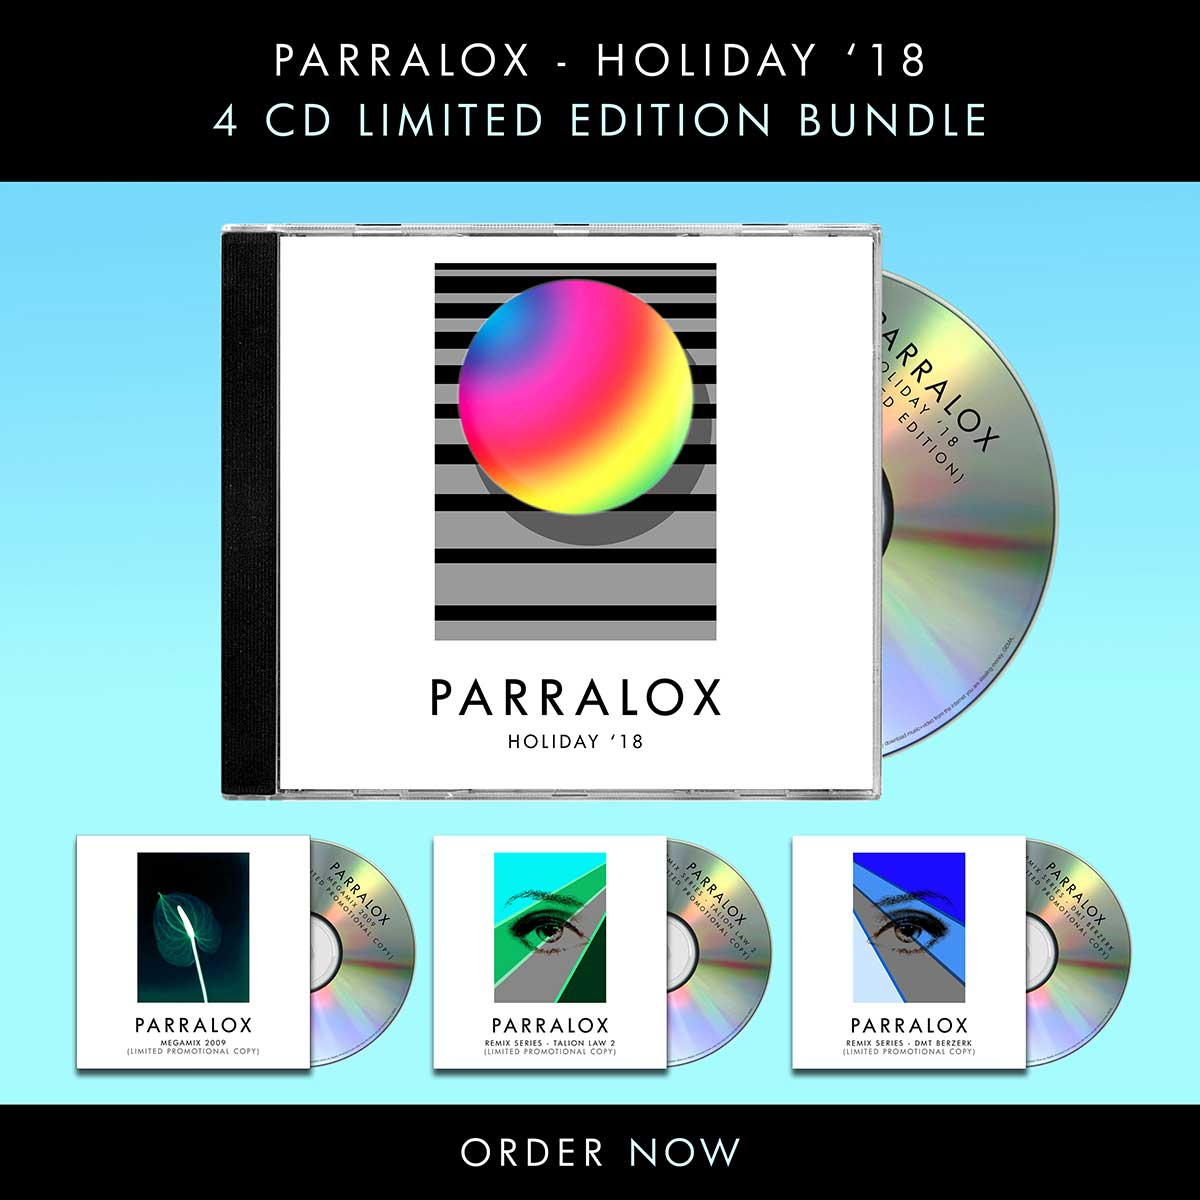 Purchade the 4CD Limited Edition Holiday 18 Bundle